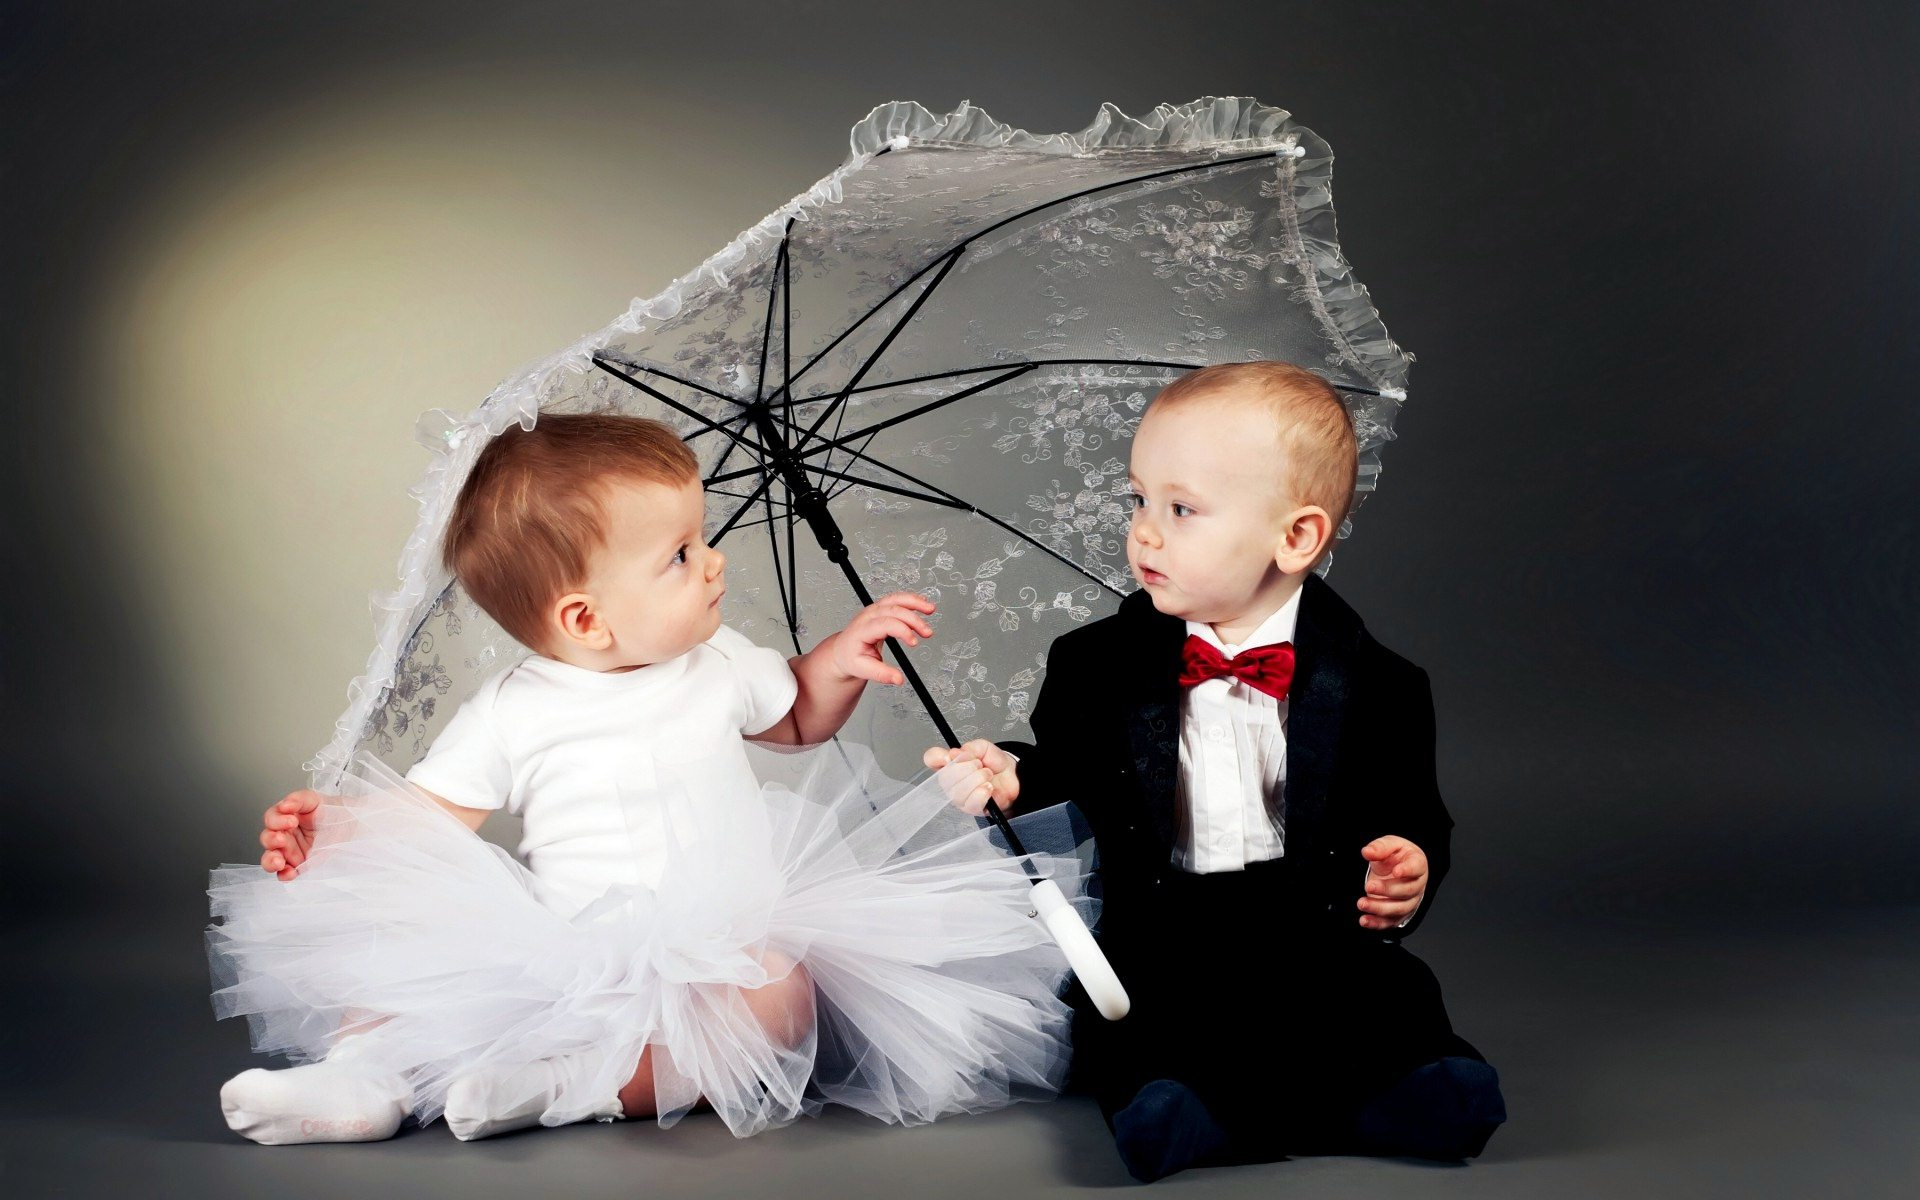 Romantic Baby Love Wallpaper : Top 150+ Beautiful cute Romantic Love couple HD Wallpaper